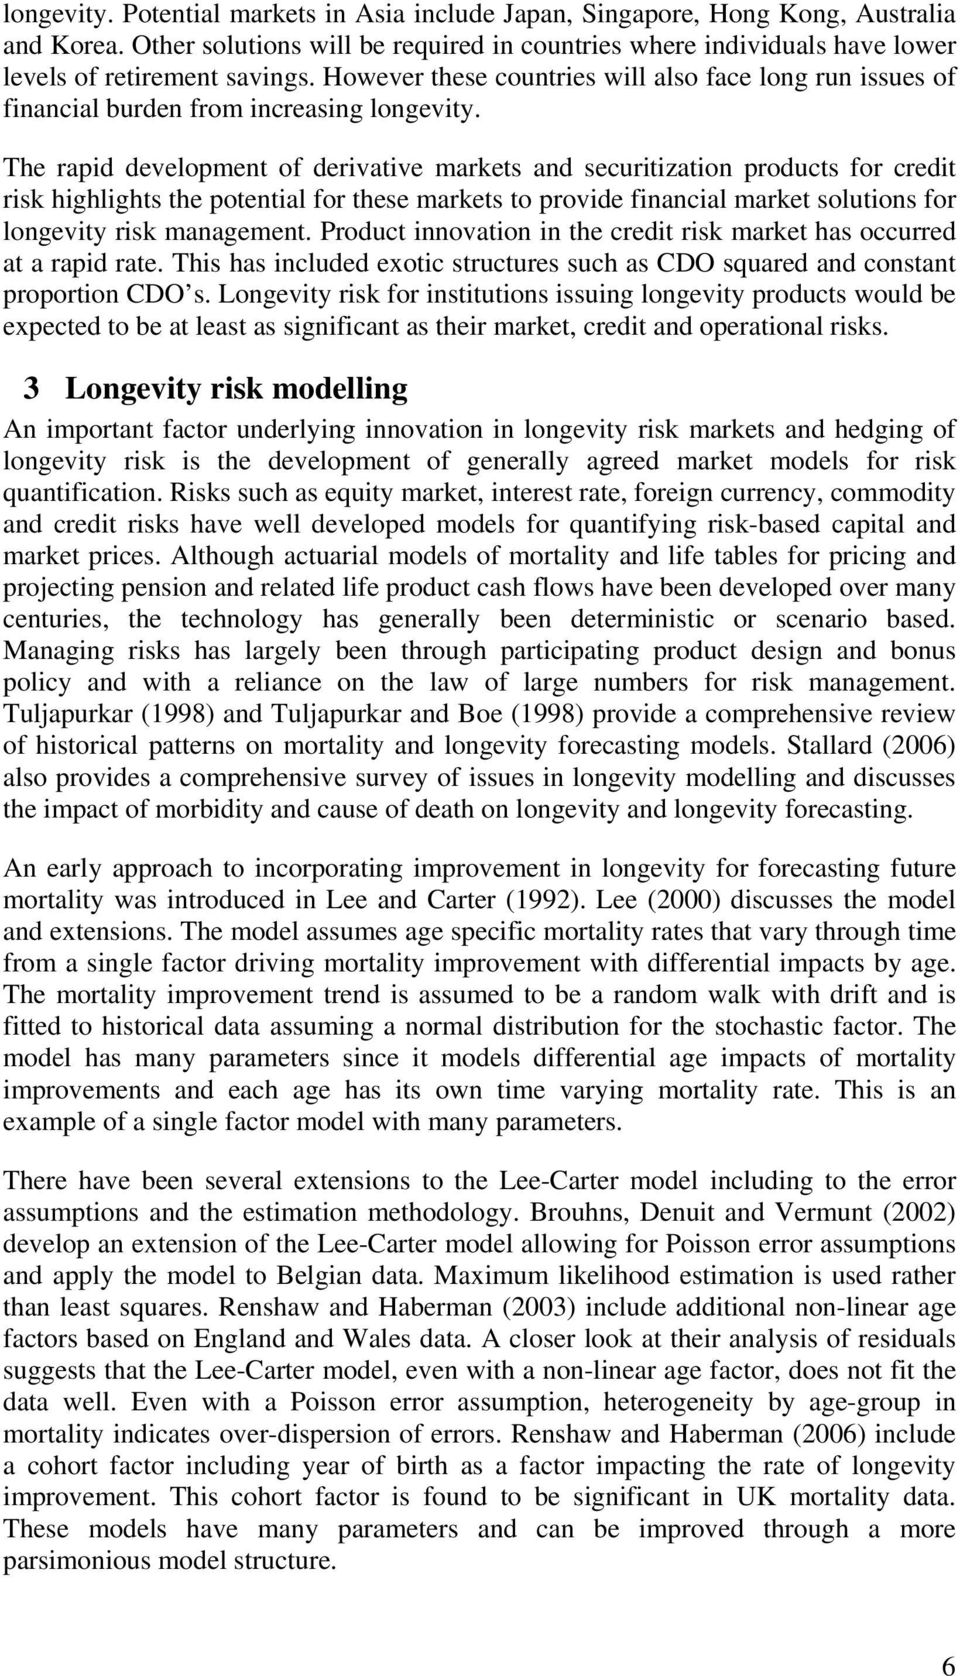 The rapid development of derivative markets and securitization products for credit risk highlights the potential for these markets to provide financial market solutions for longevity risk management.